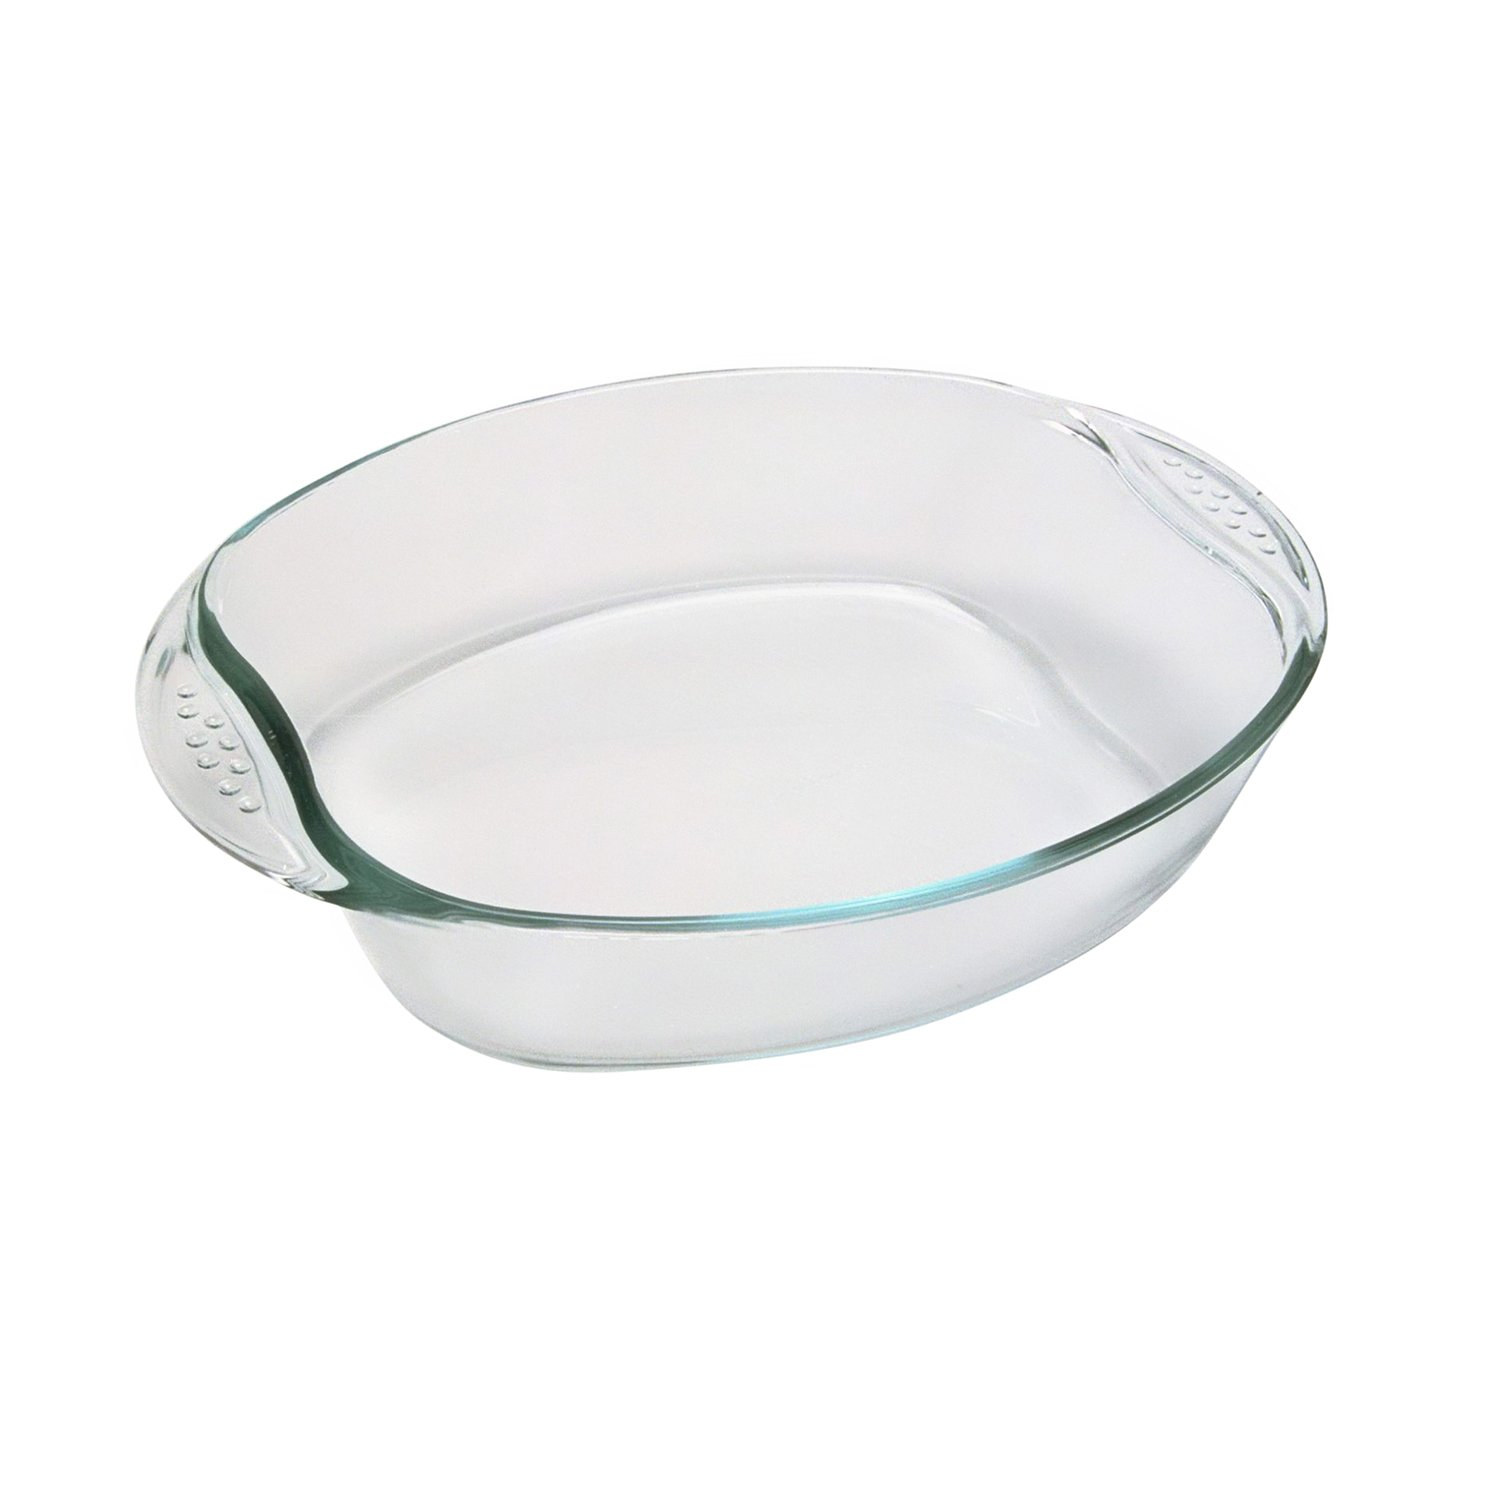 Pyrex Optimum Oval Roaster (35x24cm)